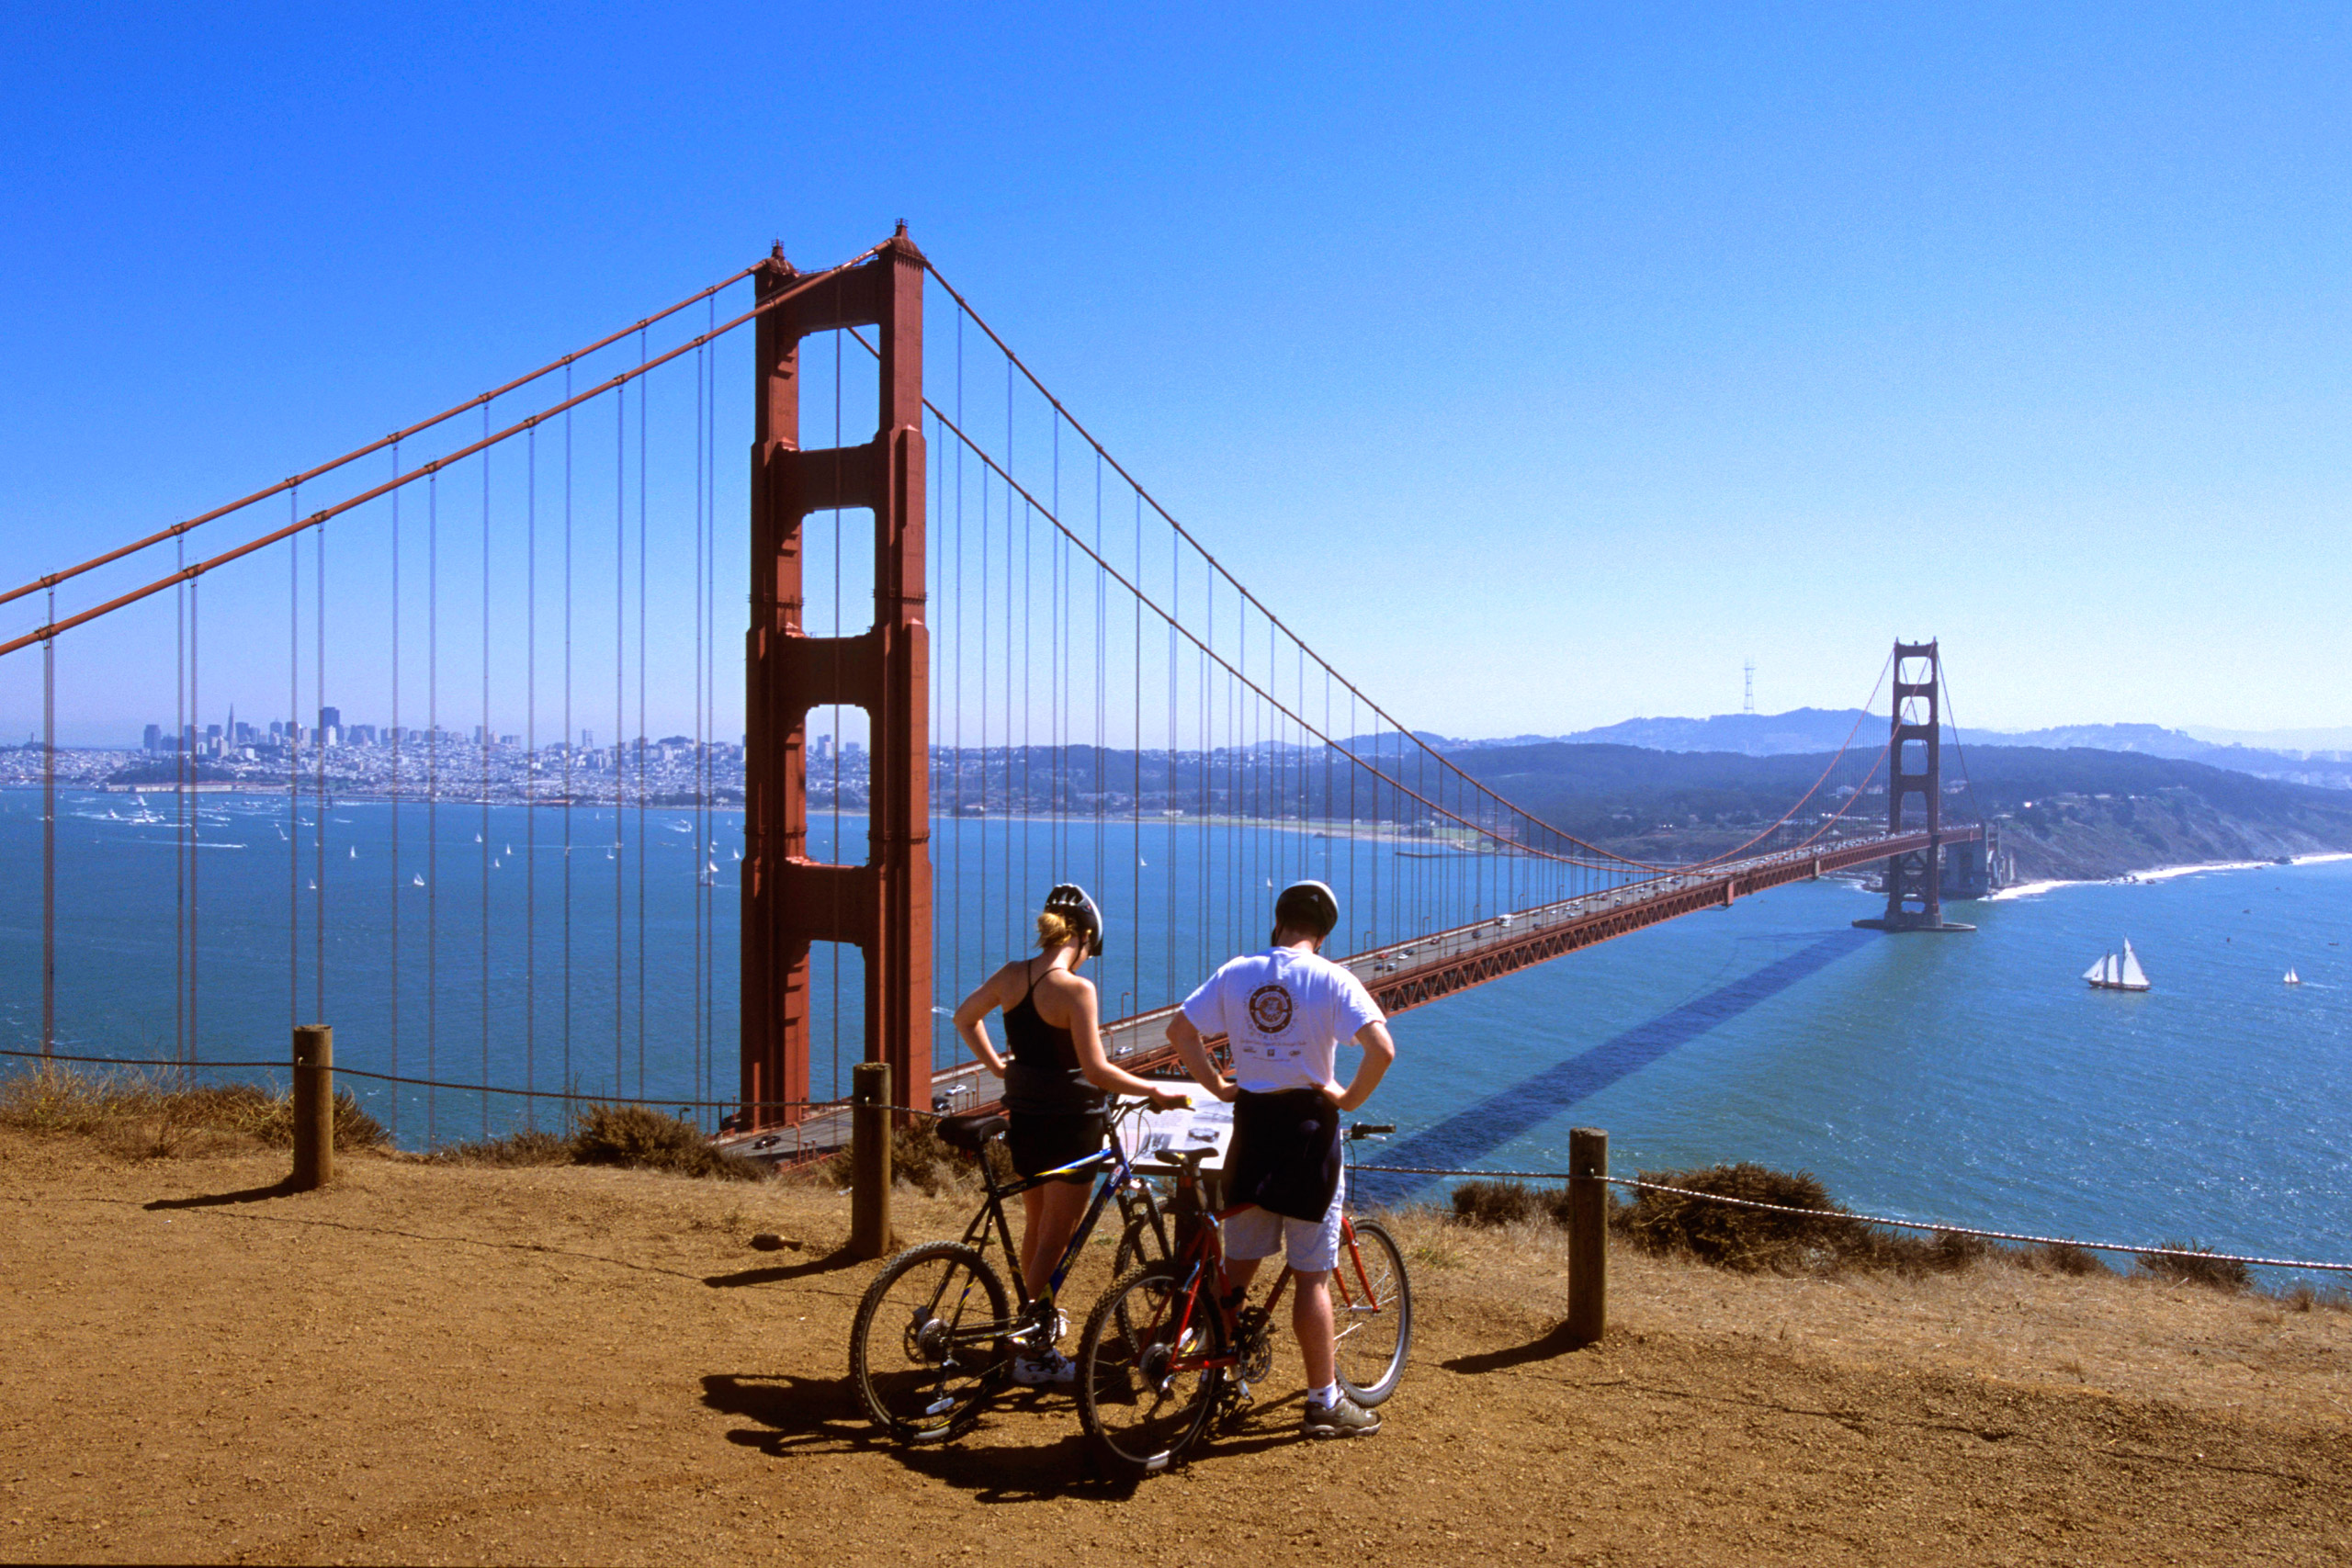 The Best Cities to Bike In - San Francisco